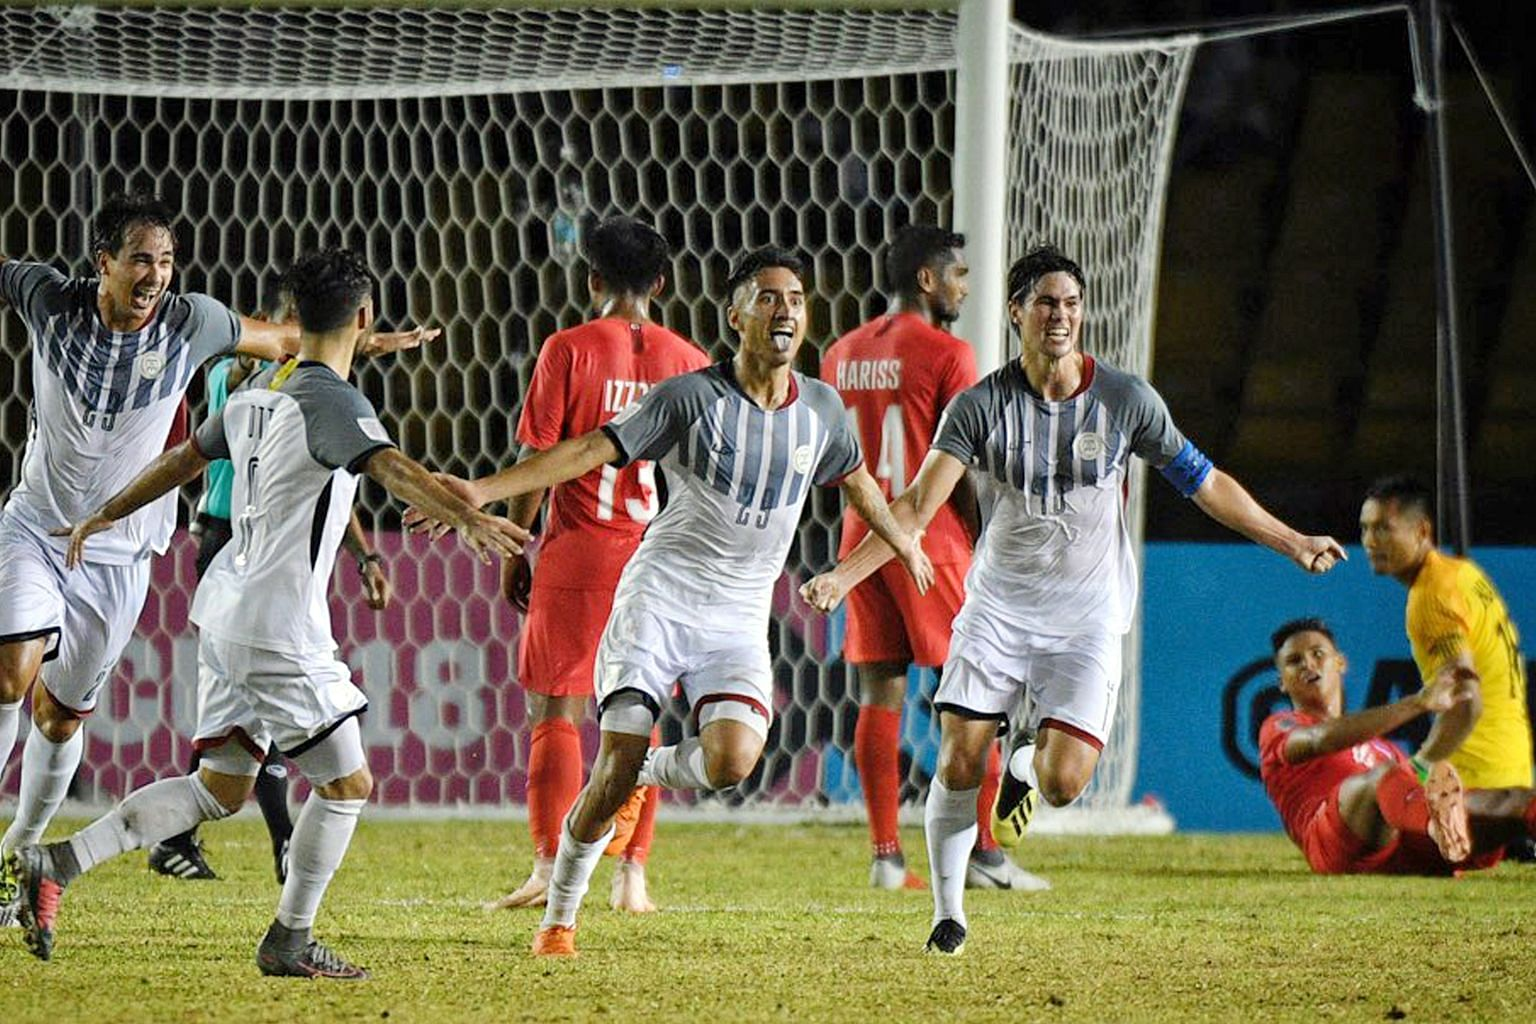 Patrick Reichelt (second from right) celebrating with his Philippine teammates after scoring the only goal of the game against Singapore at the Panaad Stadium in Bacolod.